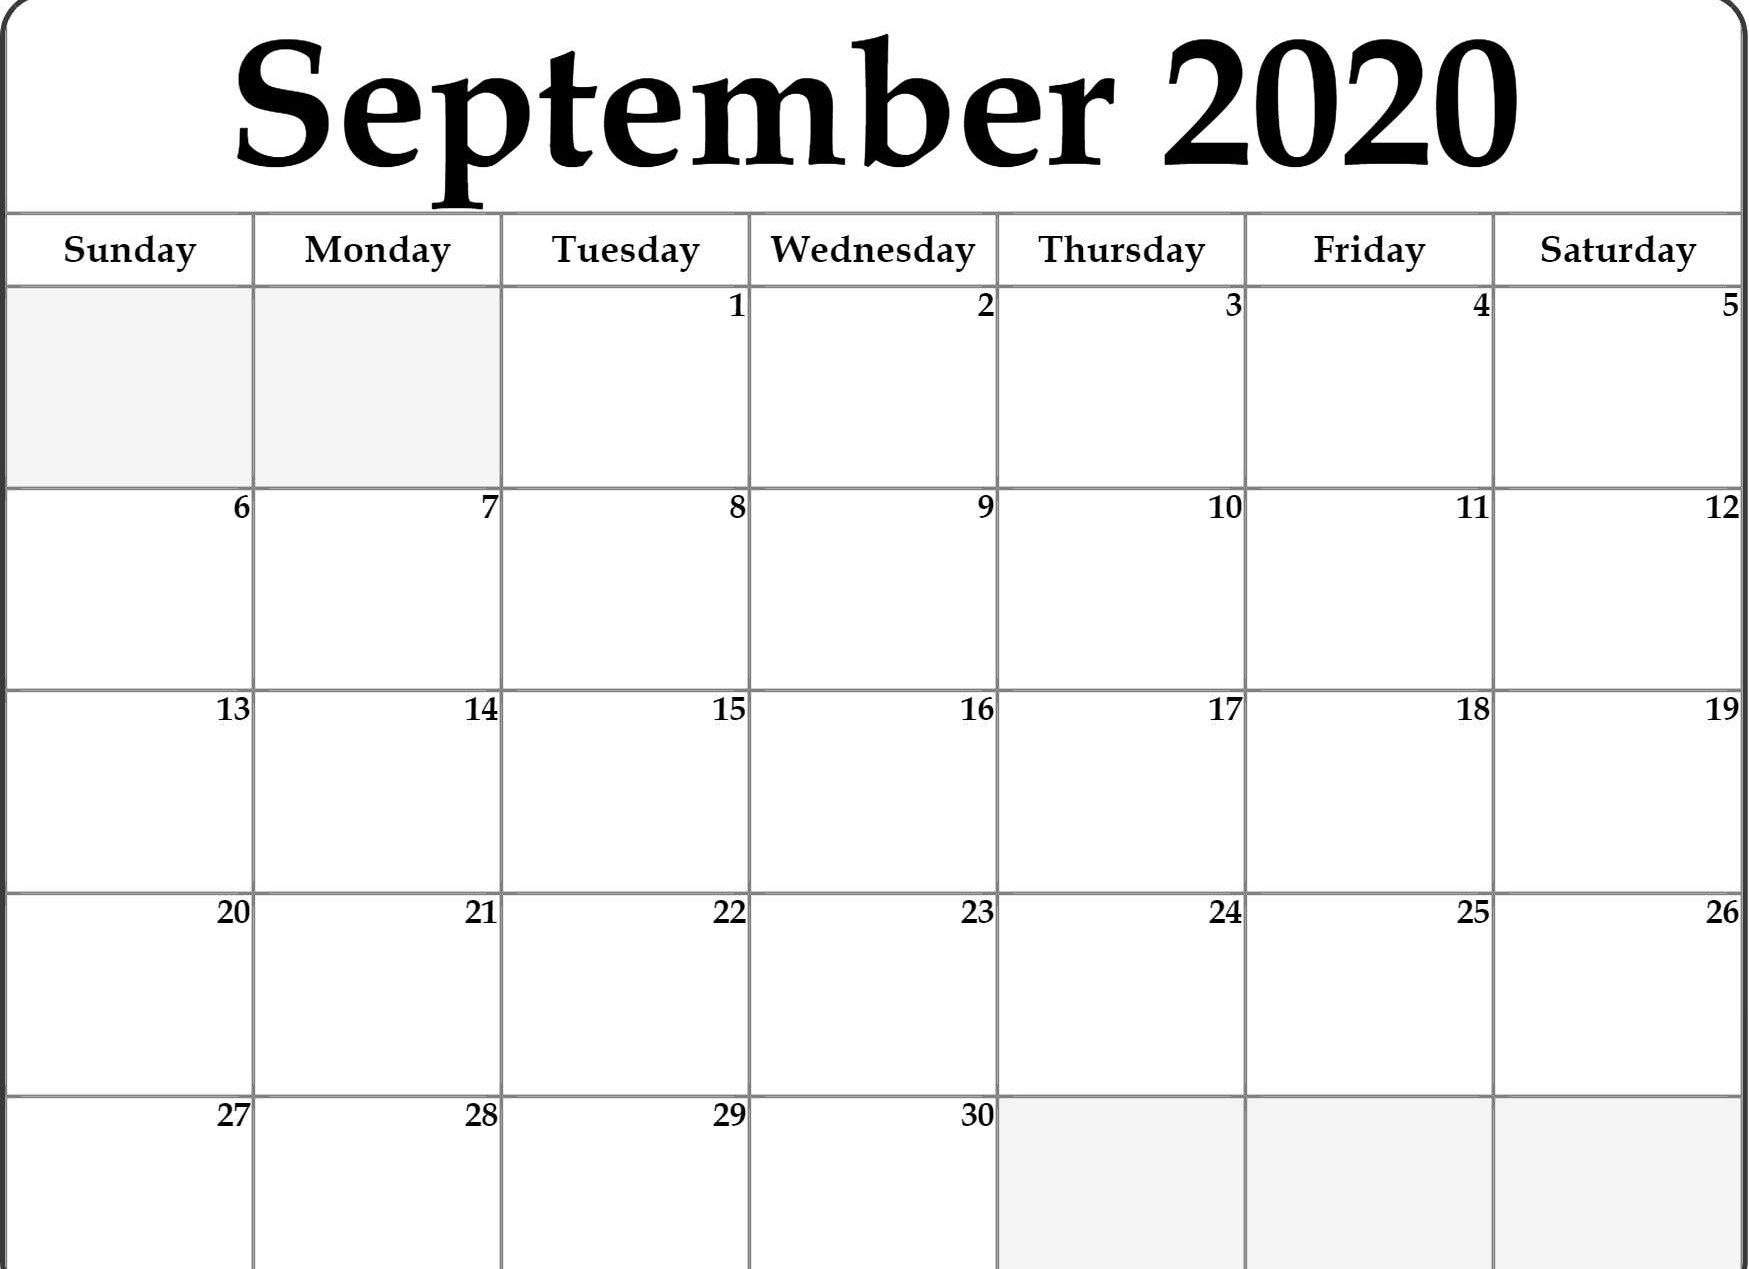 Awesome September 2020 Calendar Pdf, Word, Excel Template throughout Free Printable Monthly Calendar September 2020